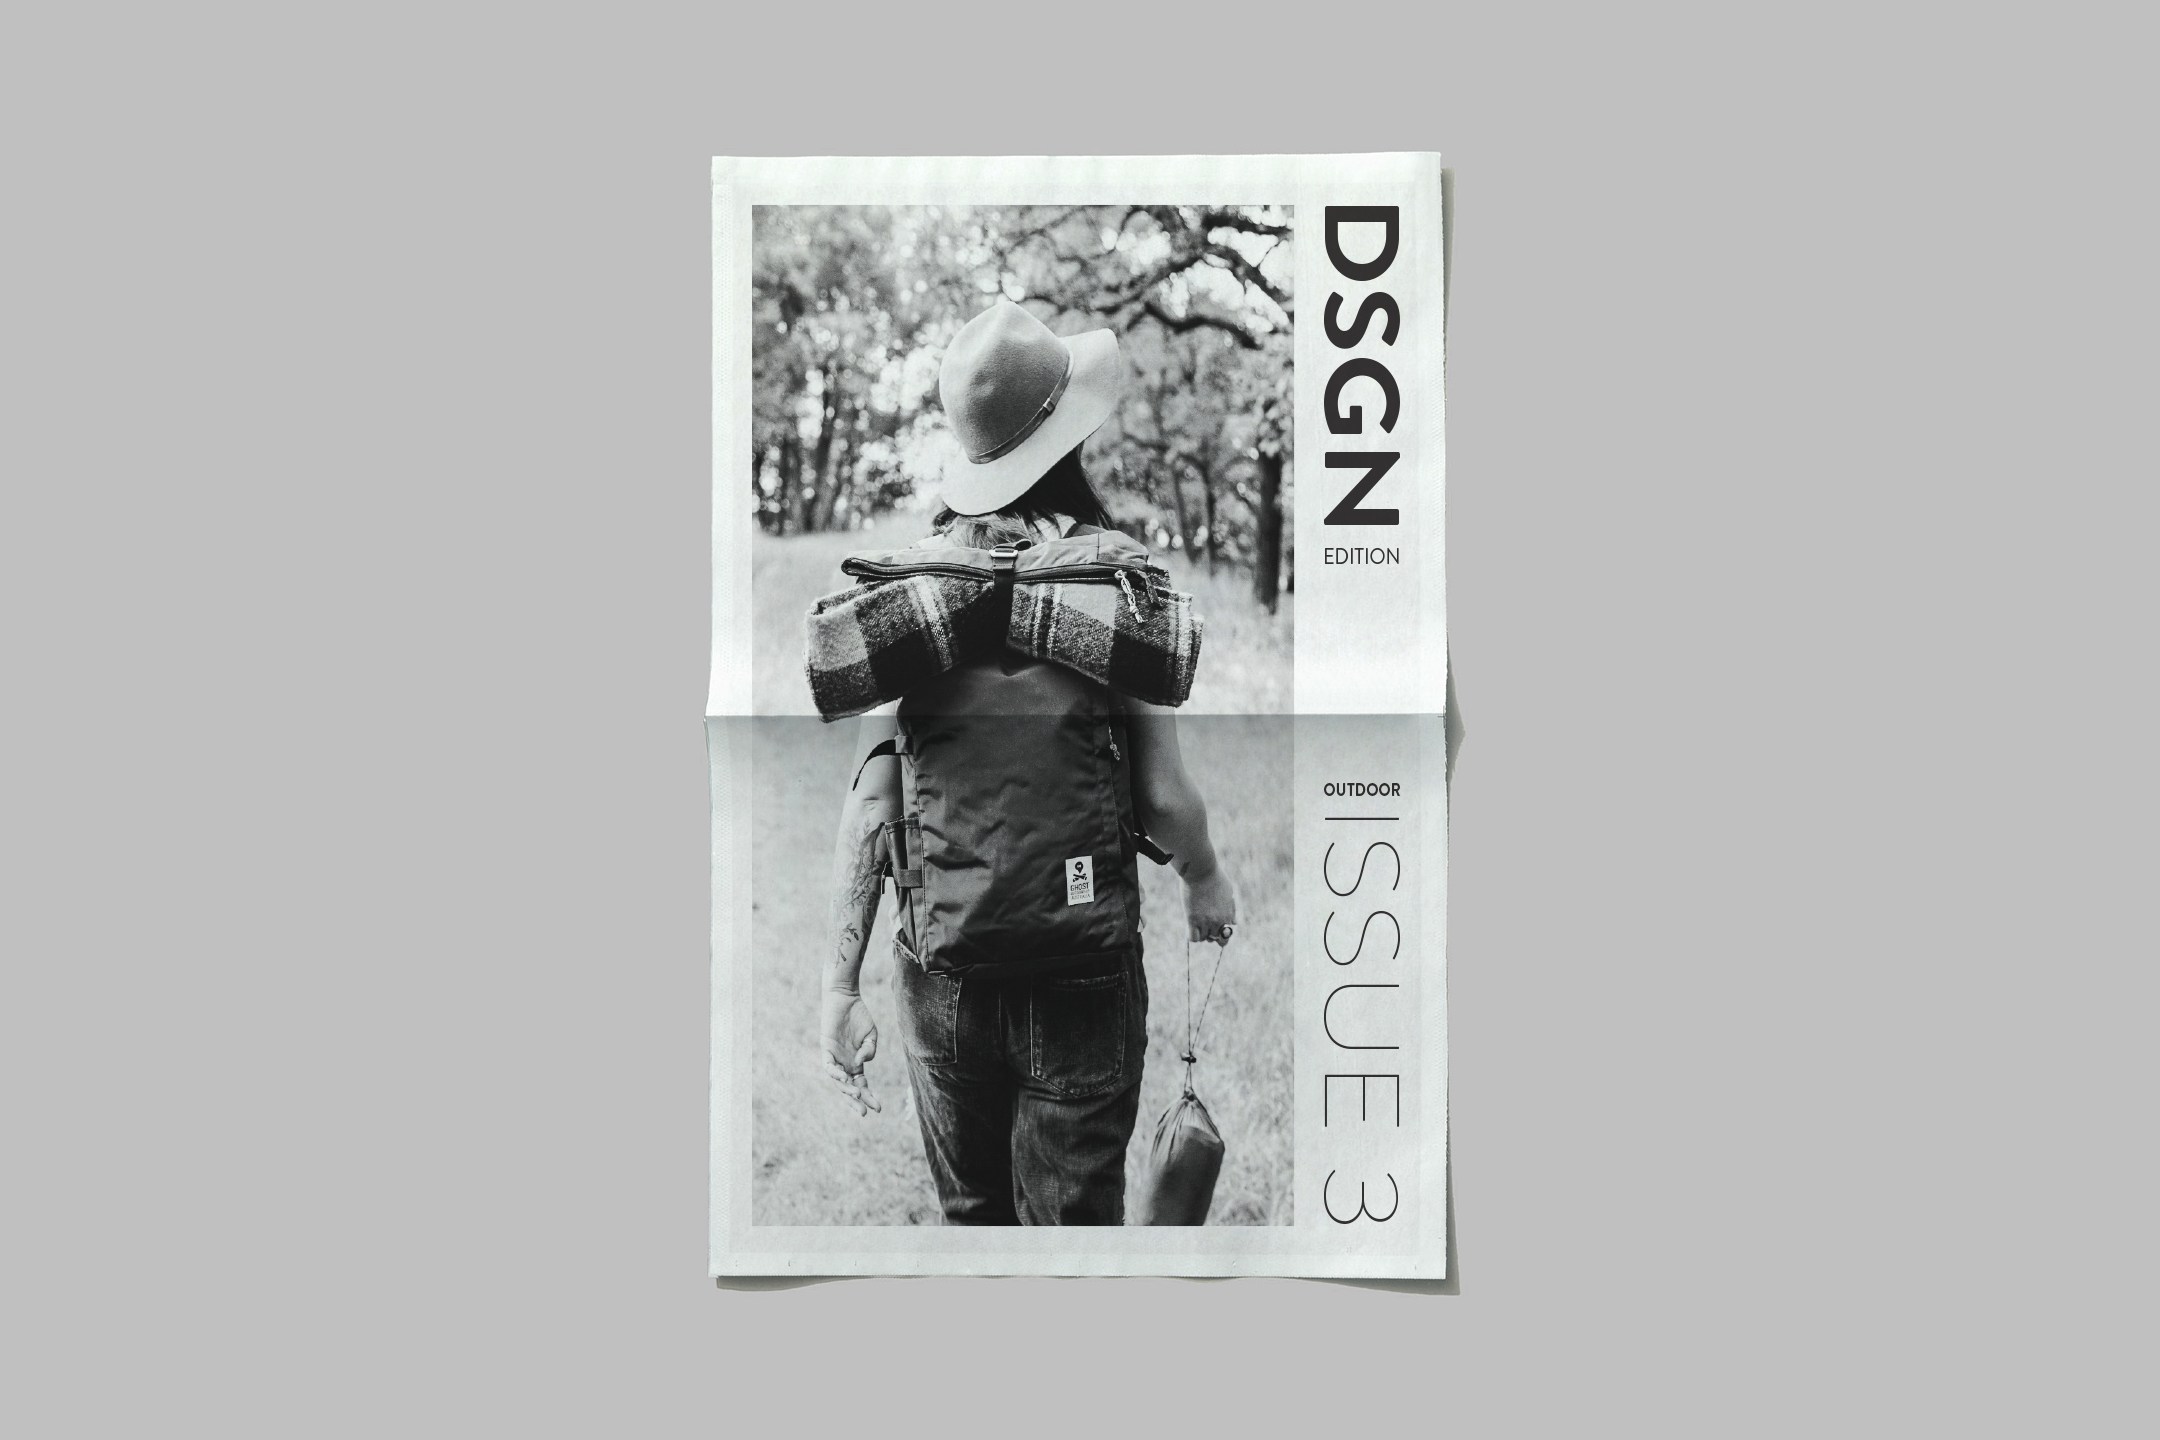 DSGN Edition - Issue 3 will launch in April 2019.